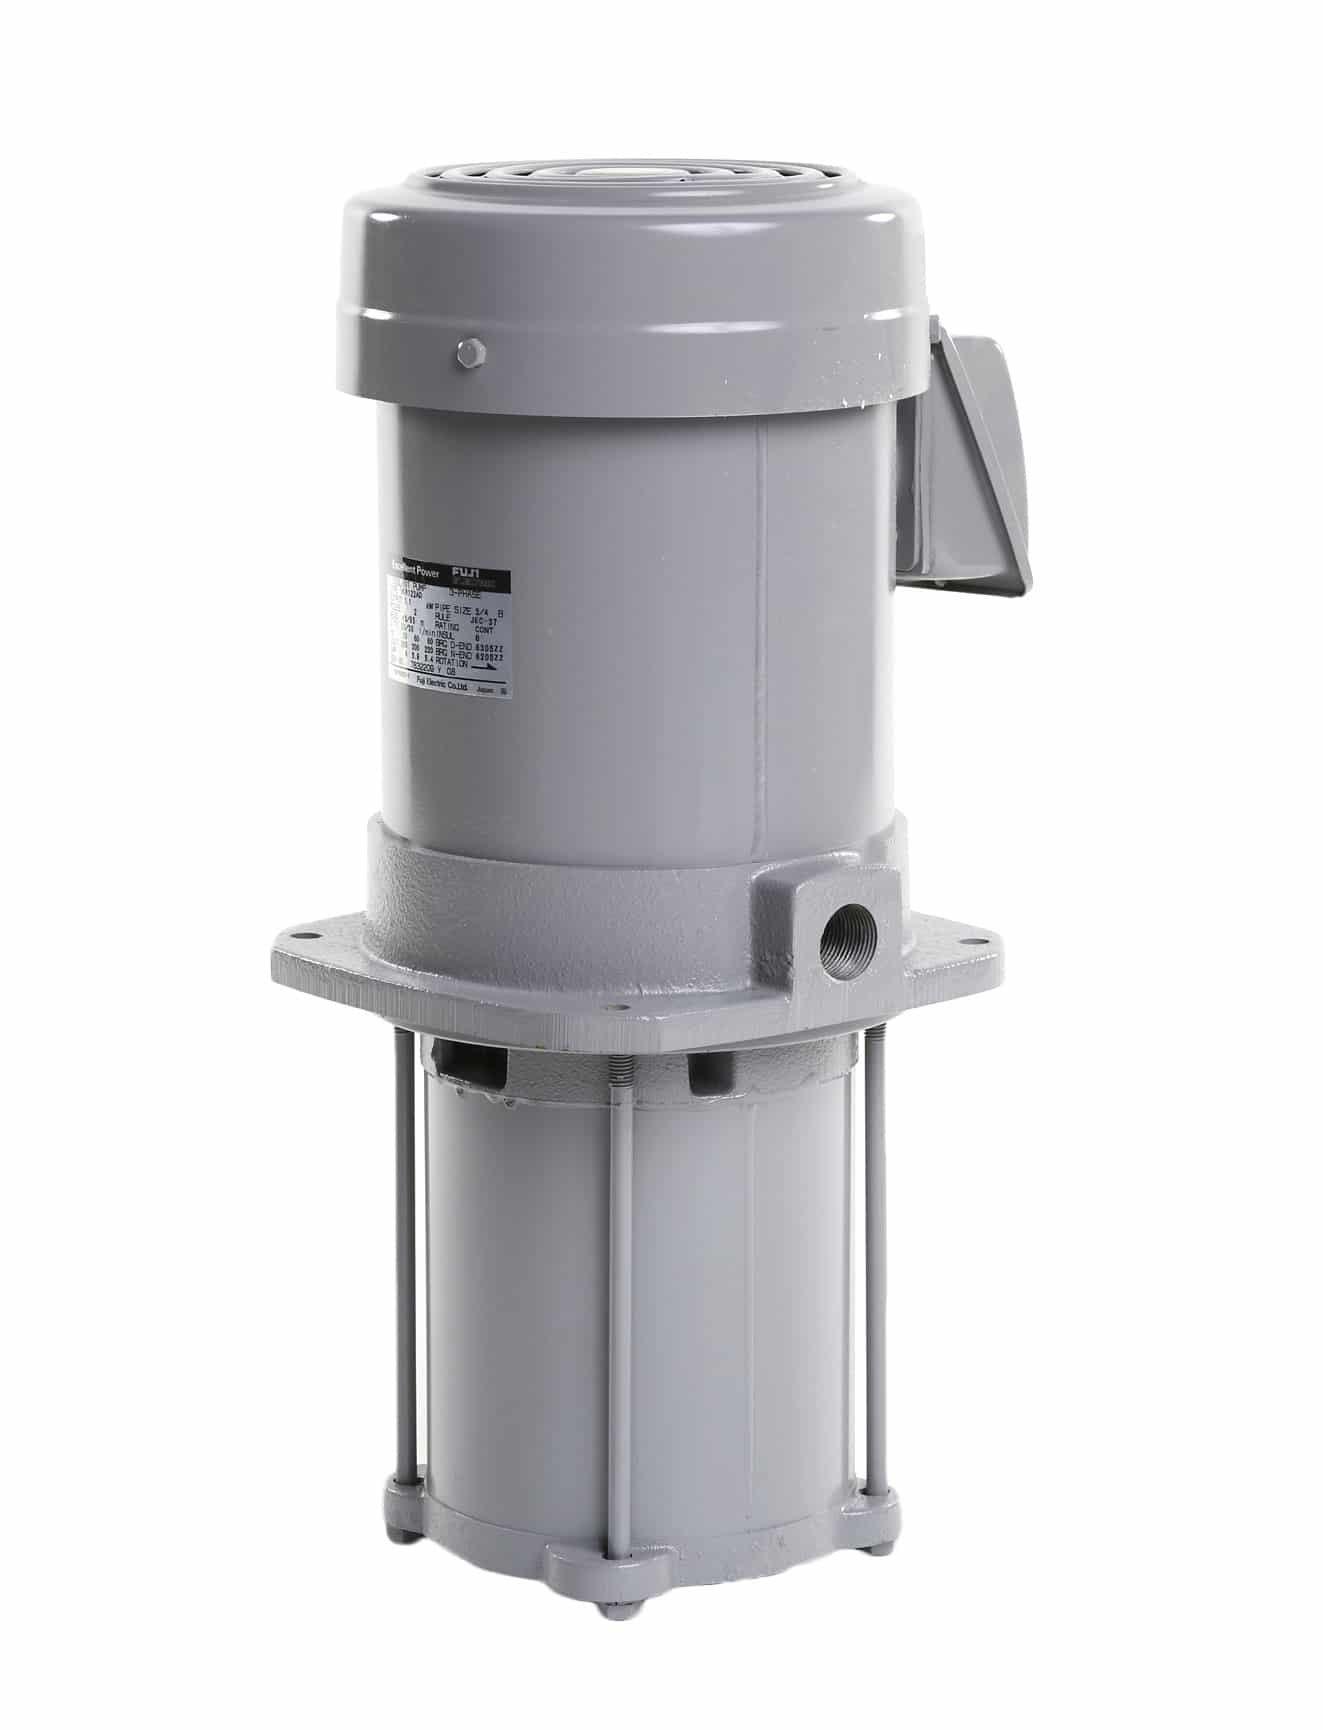 VKR- Submersible Pumps